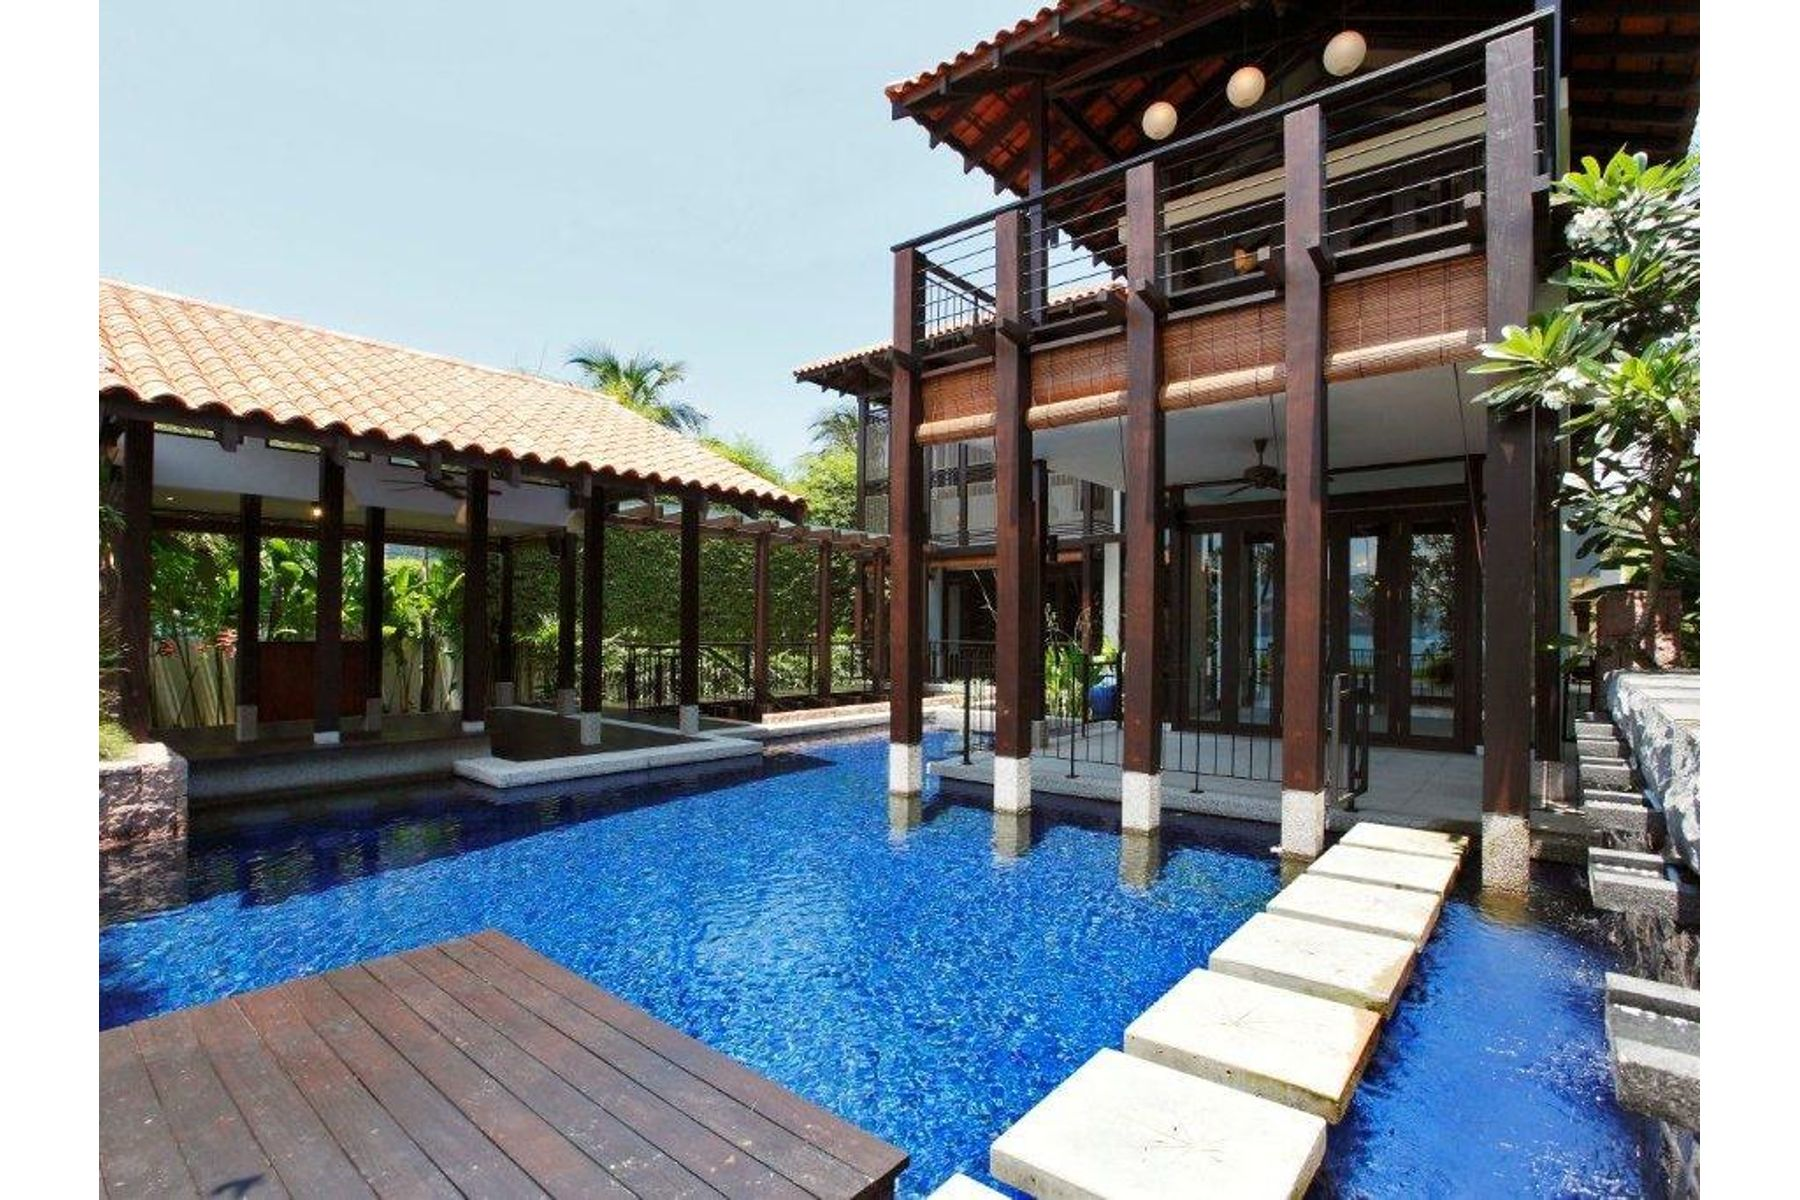 Property for Sale at Seafront Bungalow, Sentosa Cove Singapore, Cities In Singapore Singapore